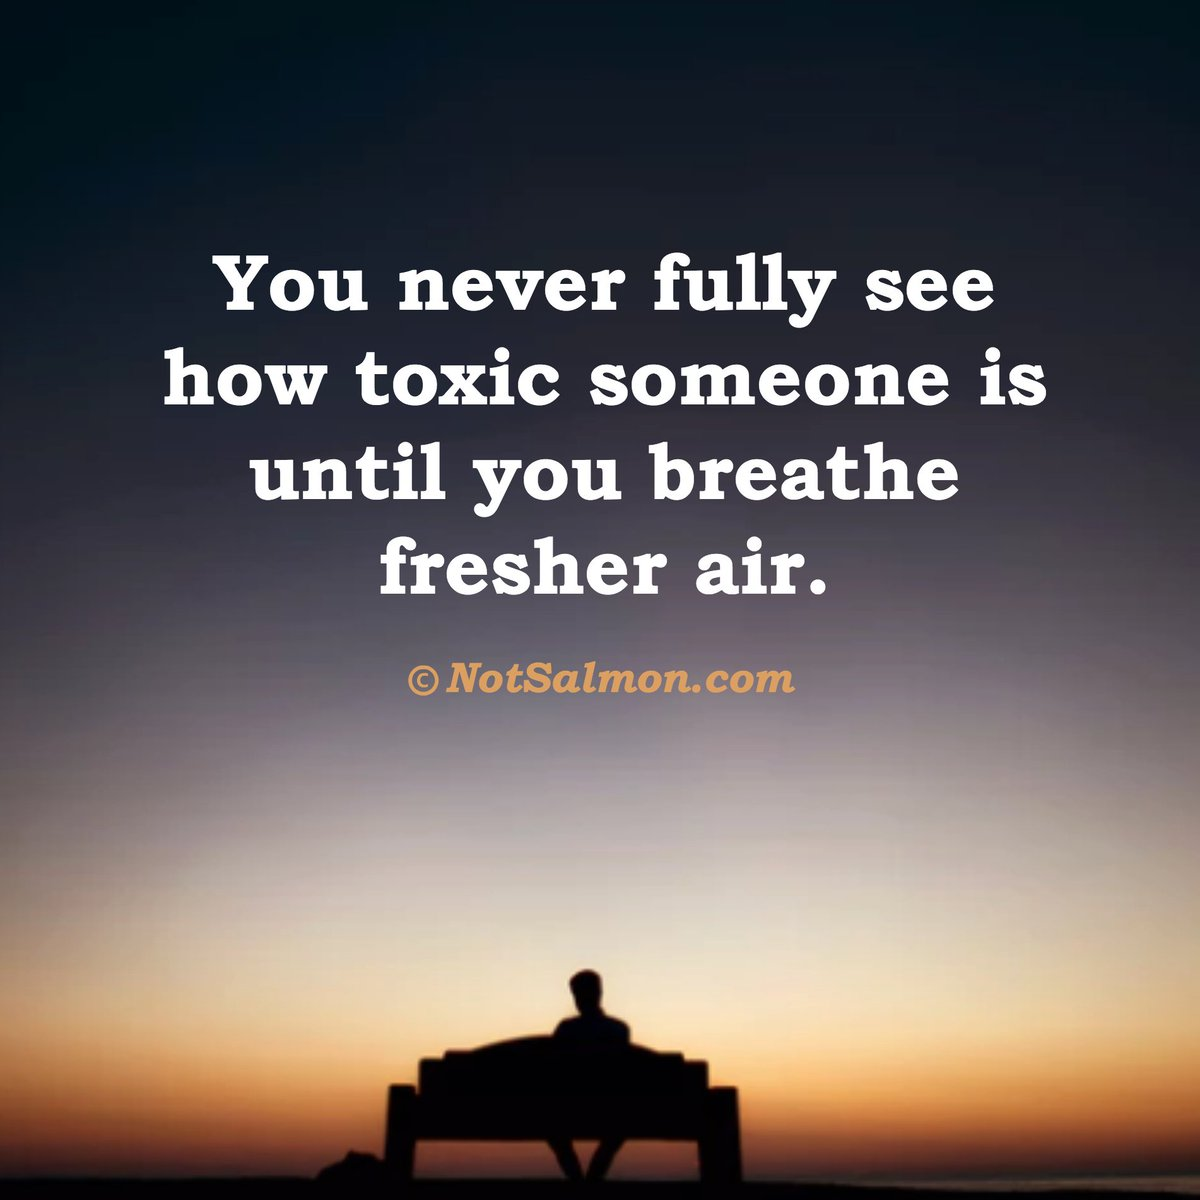 Removing Negative People Quotes: You Never Fully See How Toxic Someone Is Until You Breathe